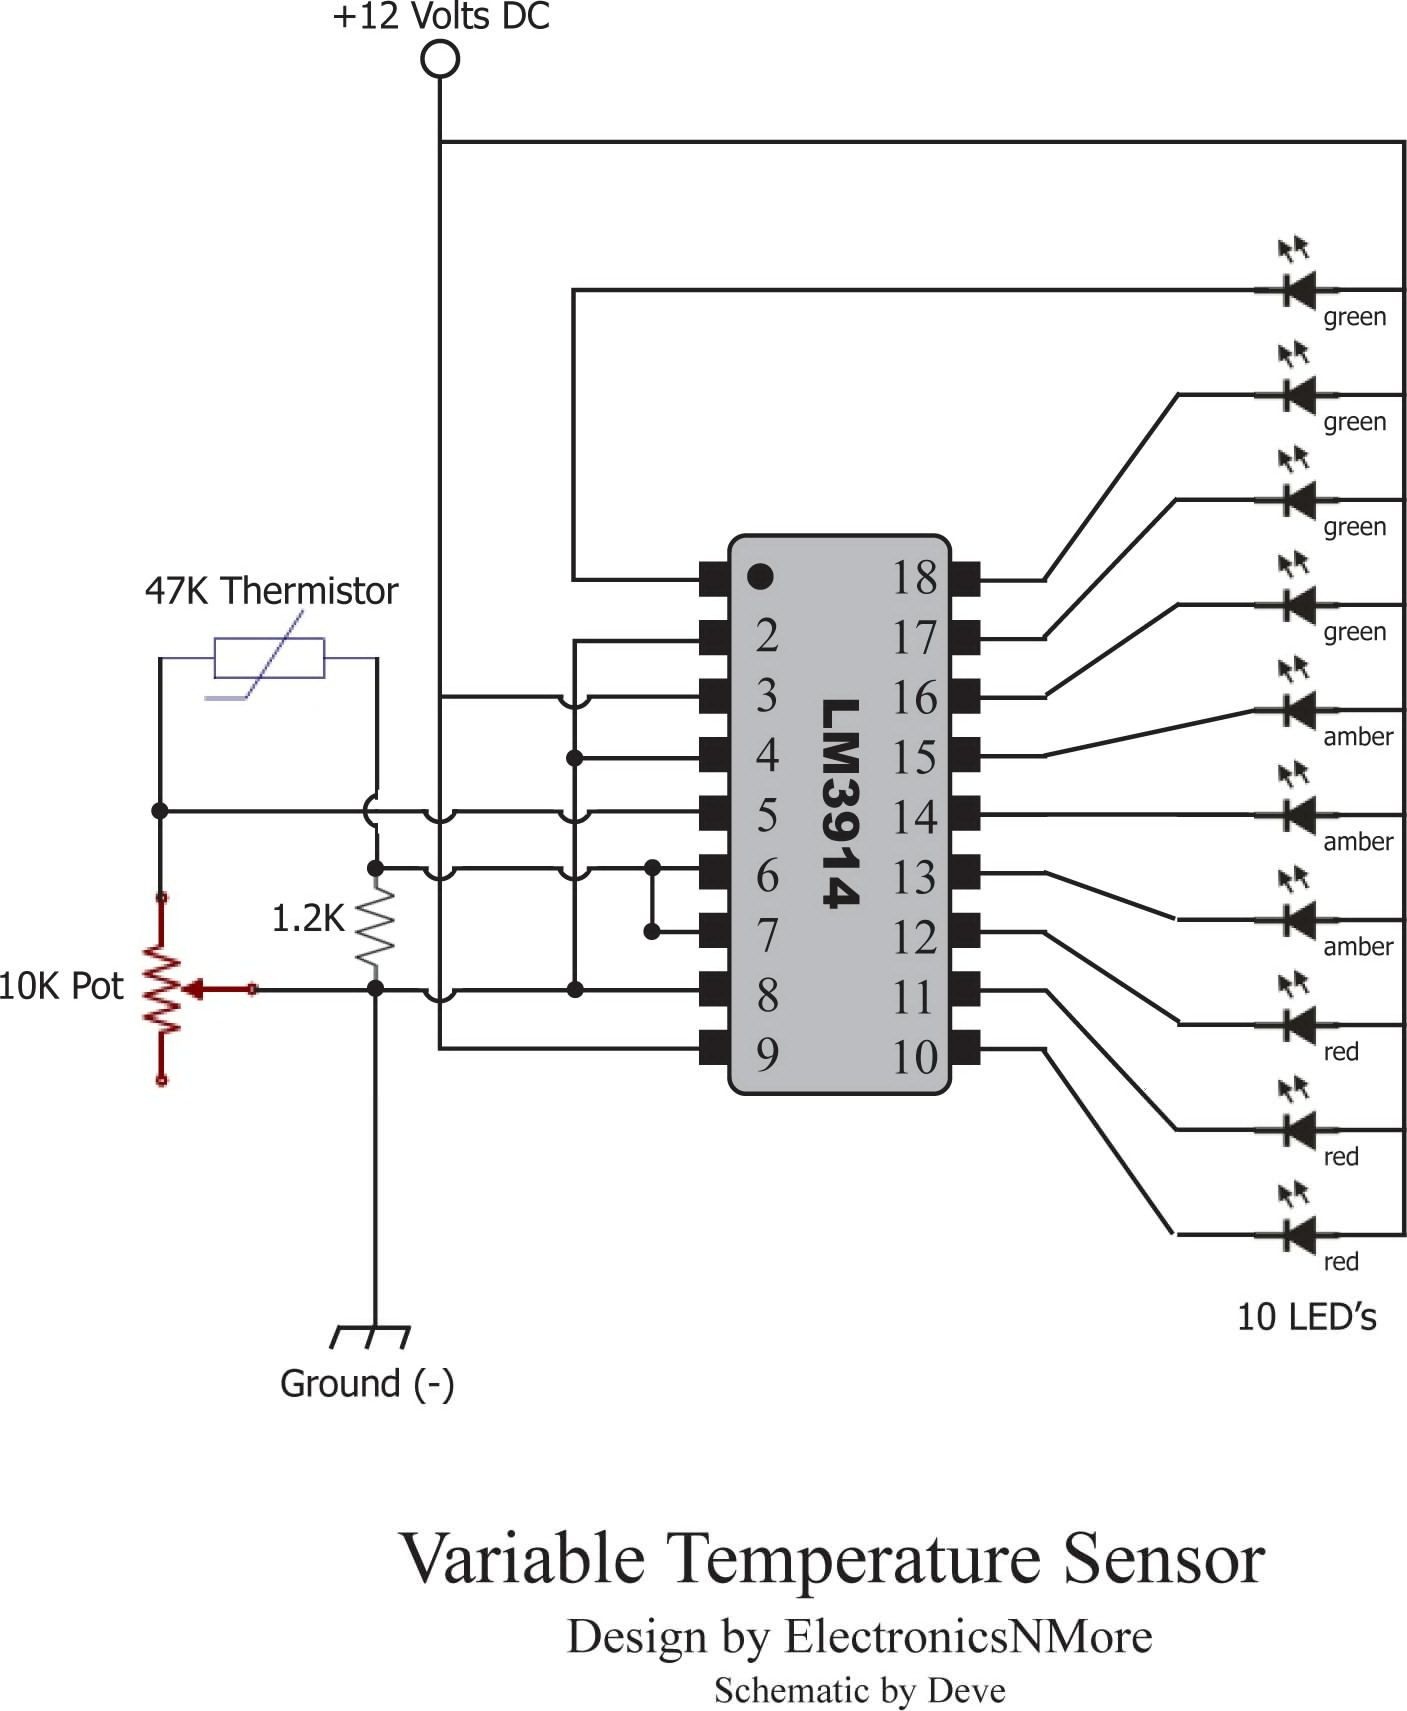 tyco 5 blade relay wiring diagram wiring diagram 12 v rh pinterest com 22si delco alternator [ 1407 x 1711 Pixel ]